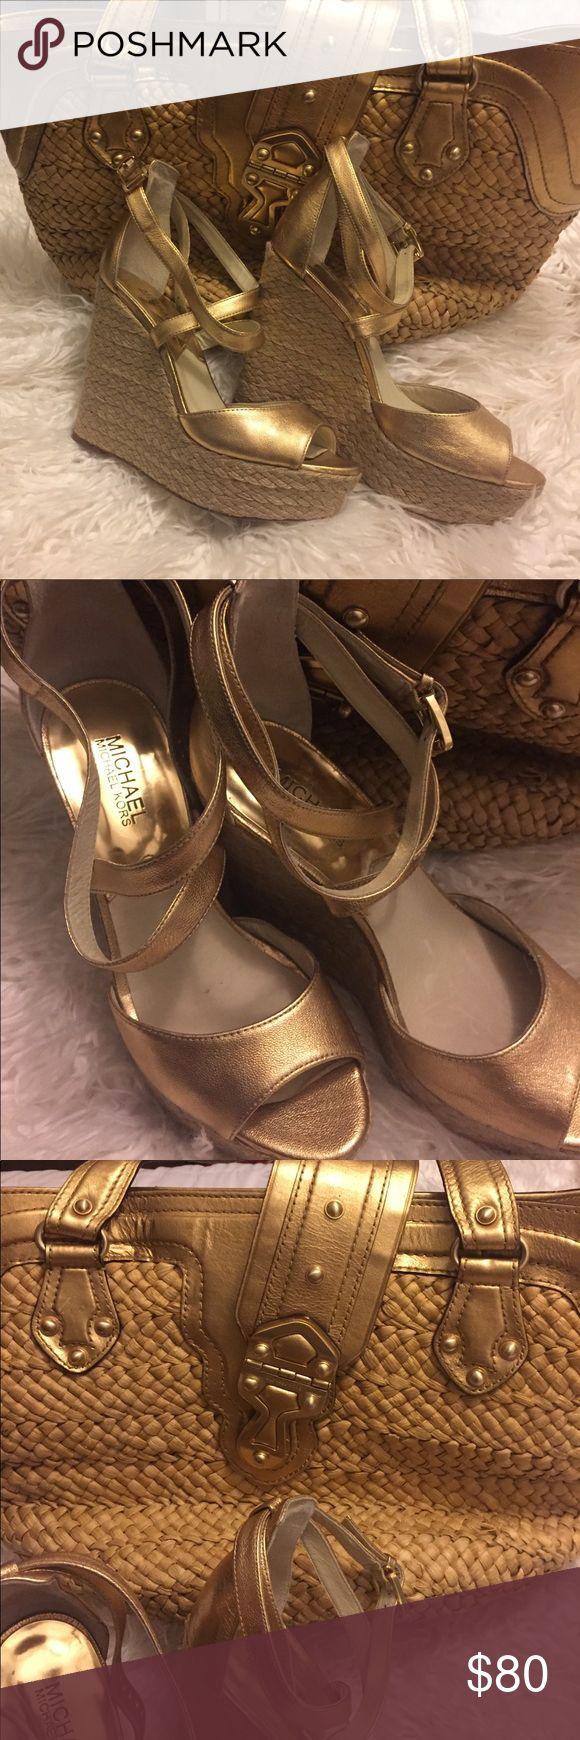 Michael Kors Gold wedge heels and MK beach bag Michael Kors gold wedge shoes and matching Michael Kors gold beach bag. Selling together because they are fabulous paired. Wore the shoes once and they are too high for me. Both gently used. $45 for the shoes and $35 for the bag! Together $80 which is way less than I paid for just one of them. Enjoy! Xox KORS Michael Kors Shoes Wedges